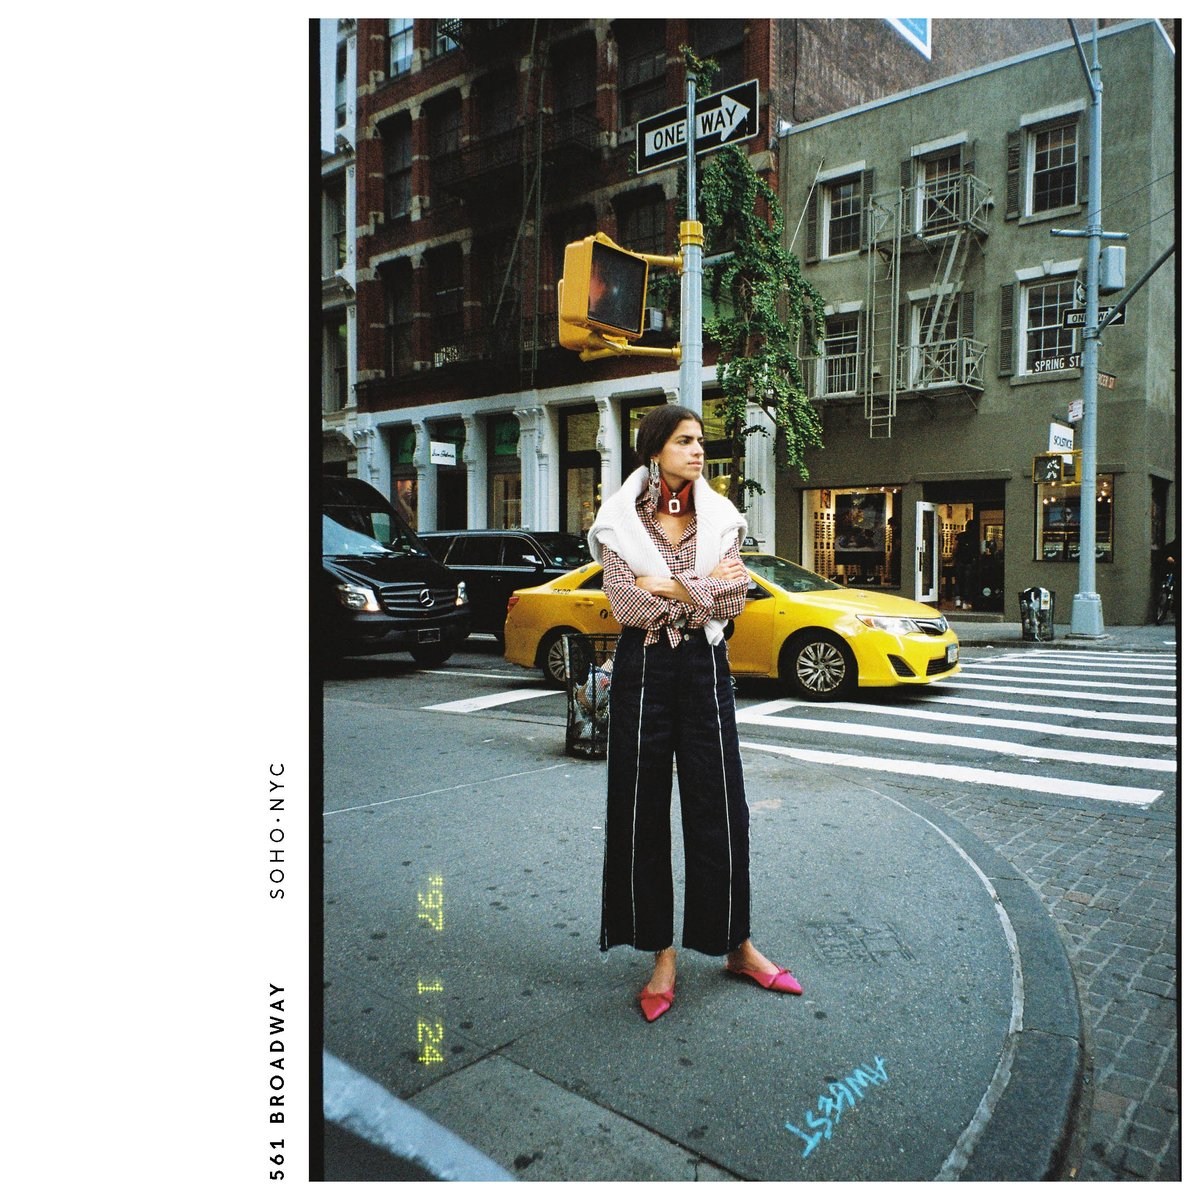 Twitter Leandra Medine nudes (73 foto and video), Topless, Cleavage, Feet, butt 2020